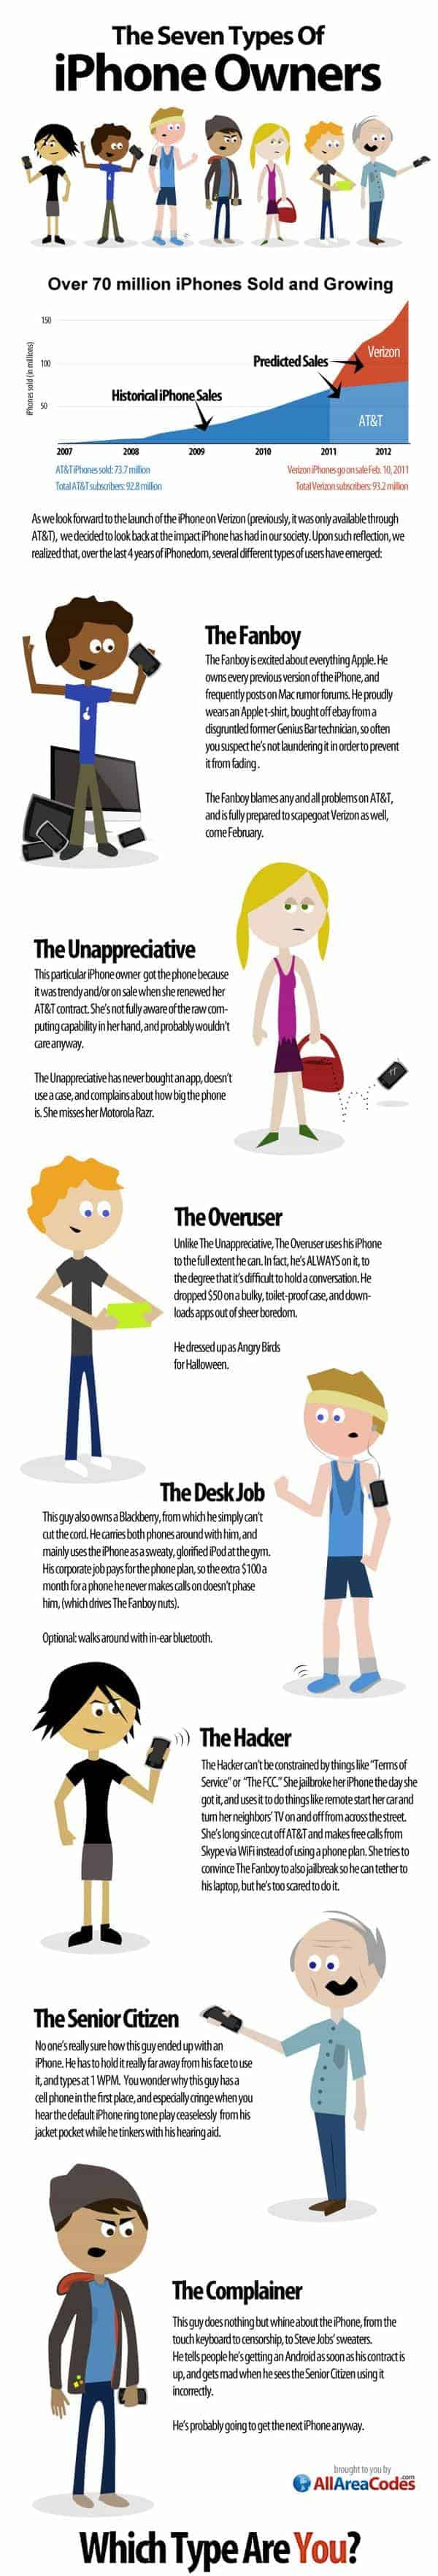 Seven Types of iPhone Owners